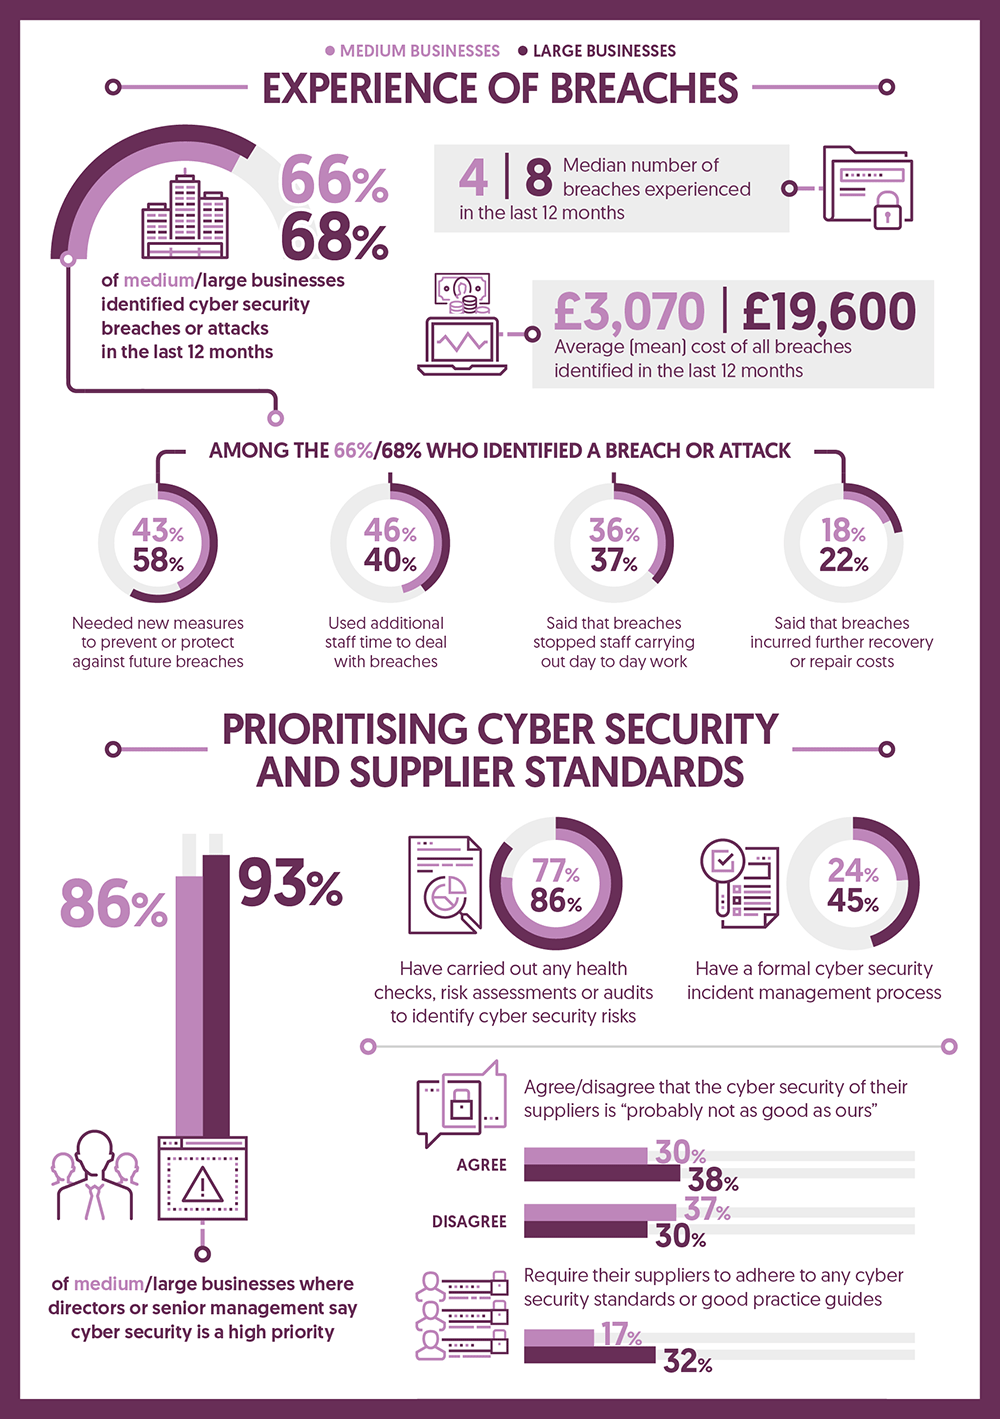 Prioritising Cyber Security and Supplier Standards